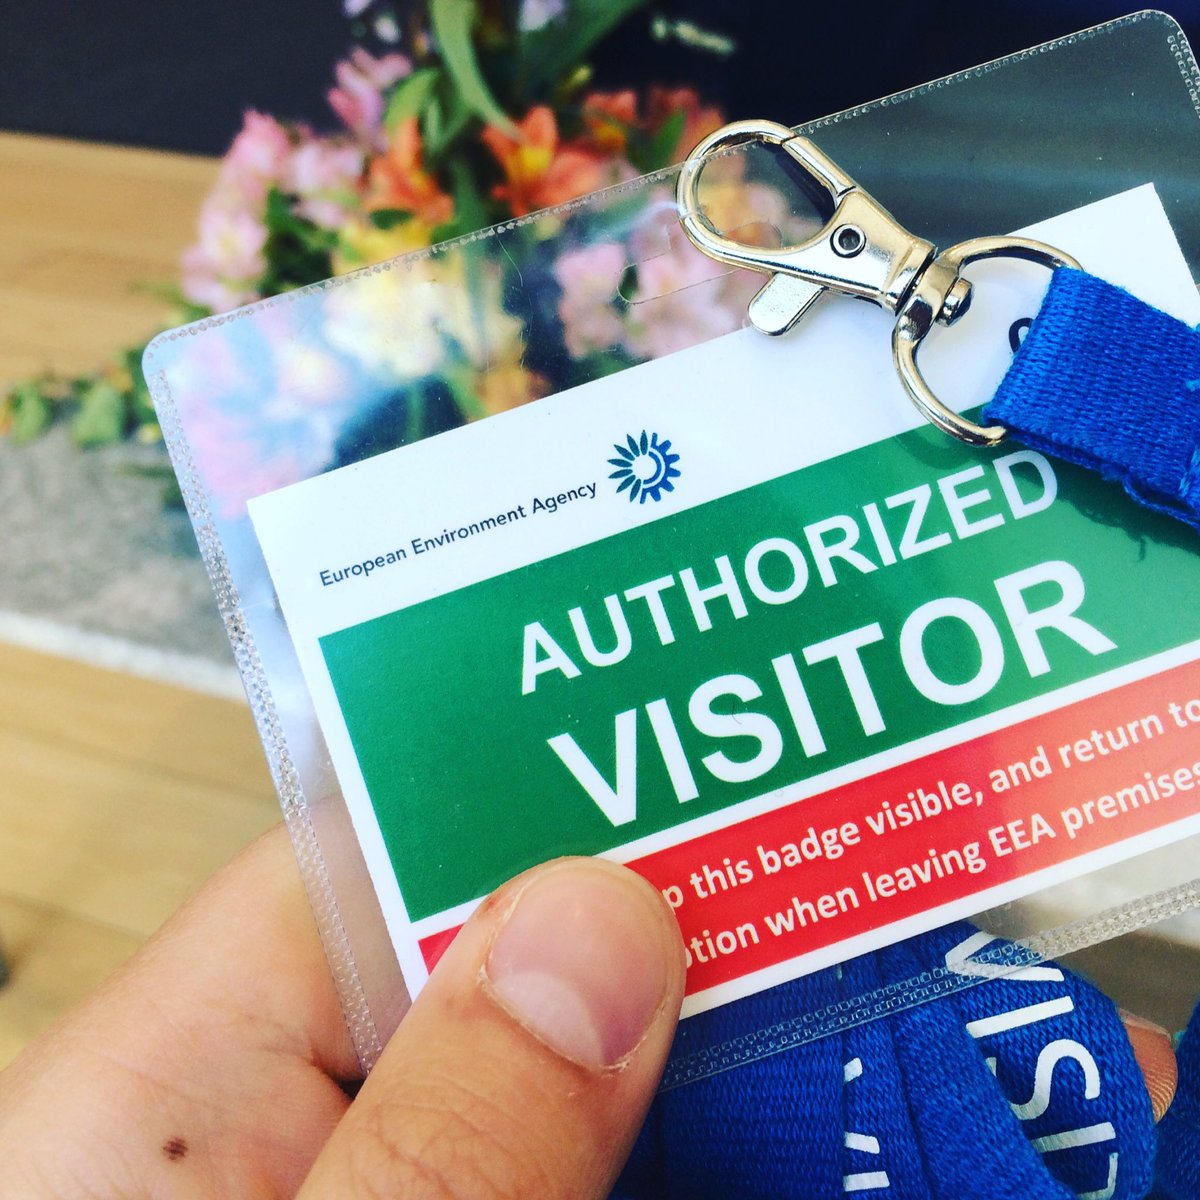 [DENMARK] Our badge collection gets bigger! Today, we&#39;re at the @EUEnvironment in Copenhagen  • #Survey #TREVE #Europe #REs #Sustainability<br>http://pic.twitter.com/ghG6Lv1equ